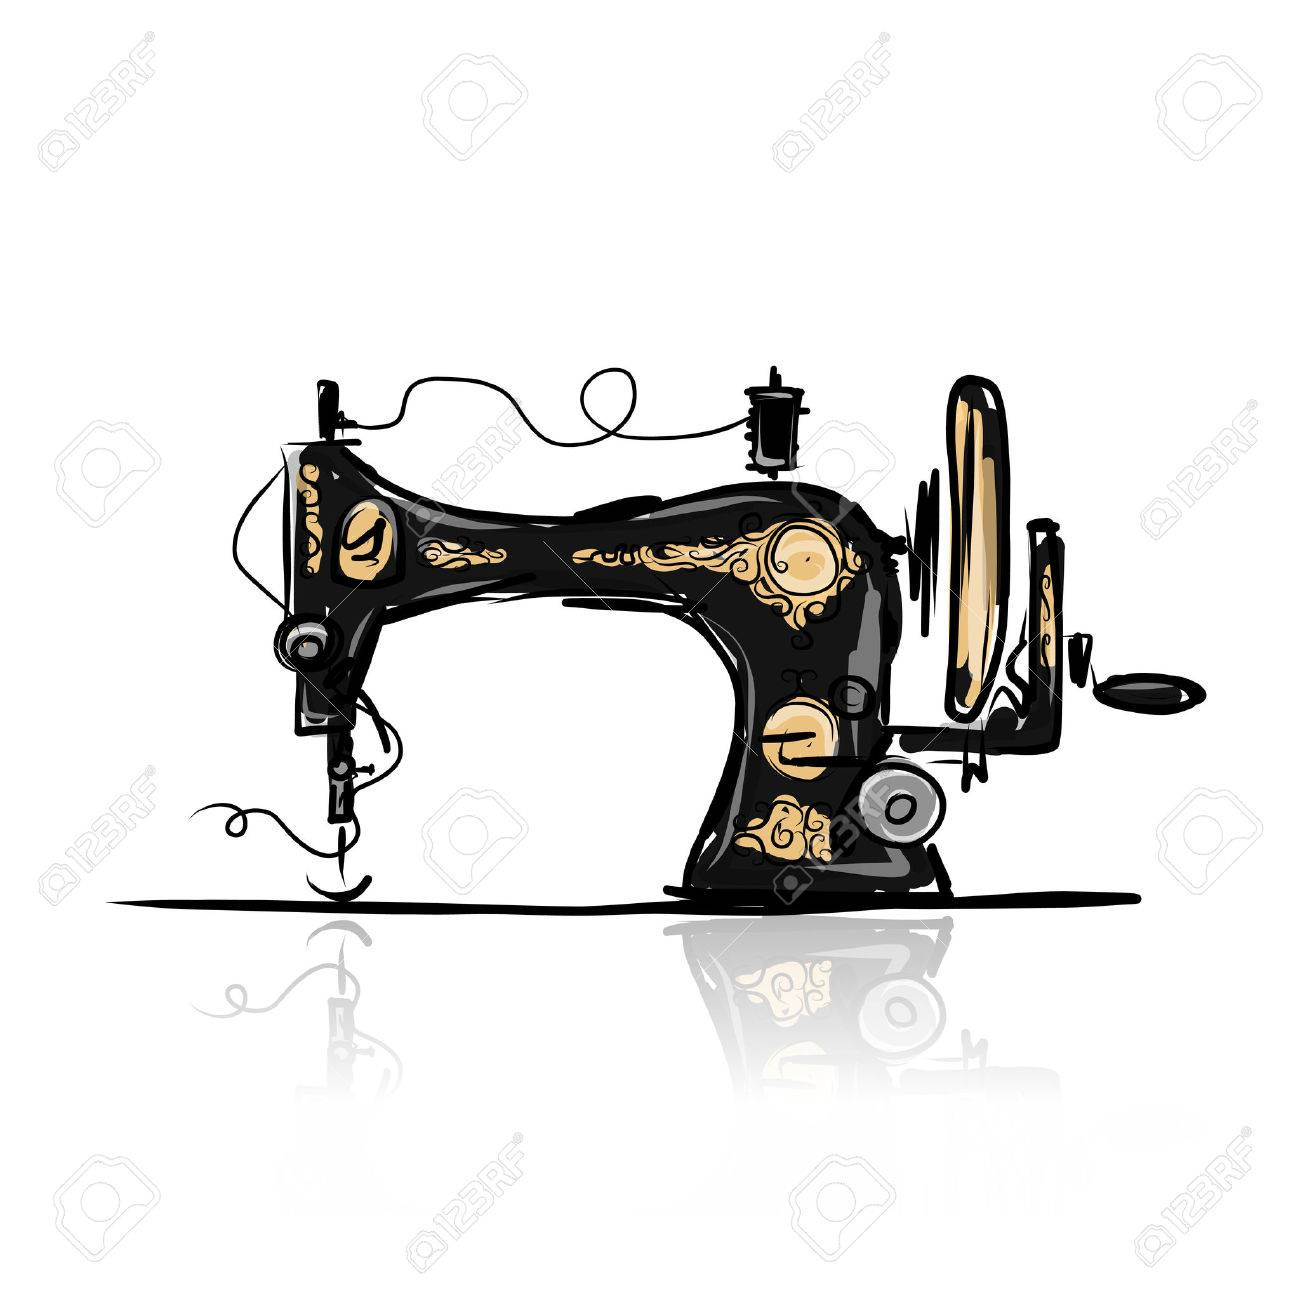 Sewing machine retro sketch for your design Stock Vector - 34050491